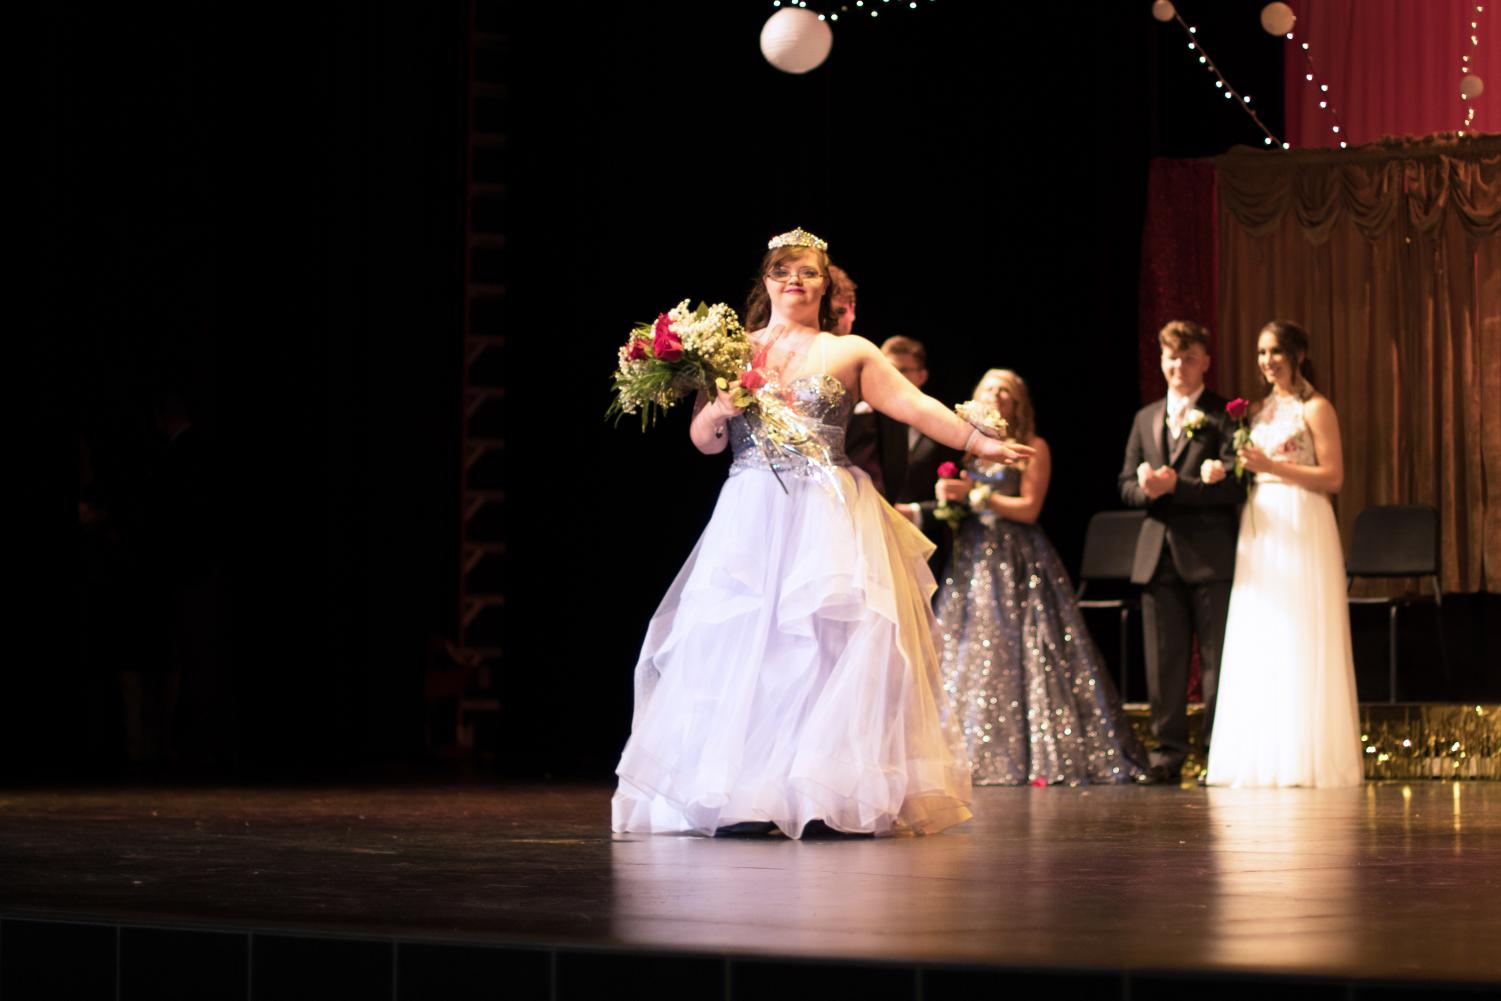 Senior+Abby+Somes+steps+forward+and+poses+after+accepting+her+crown.+She+was+announced+Coronation+Queen+on+Saturday+among+3+other+nominees.